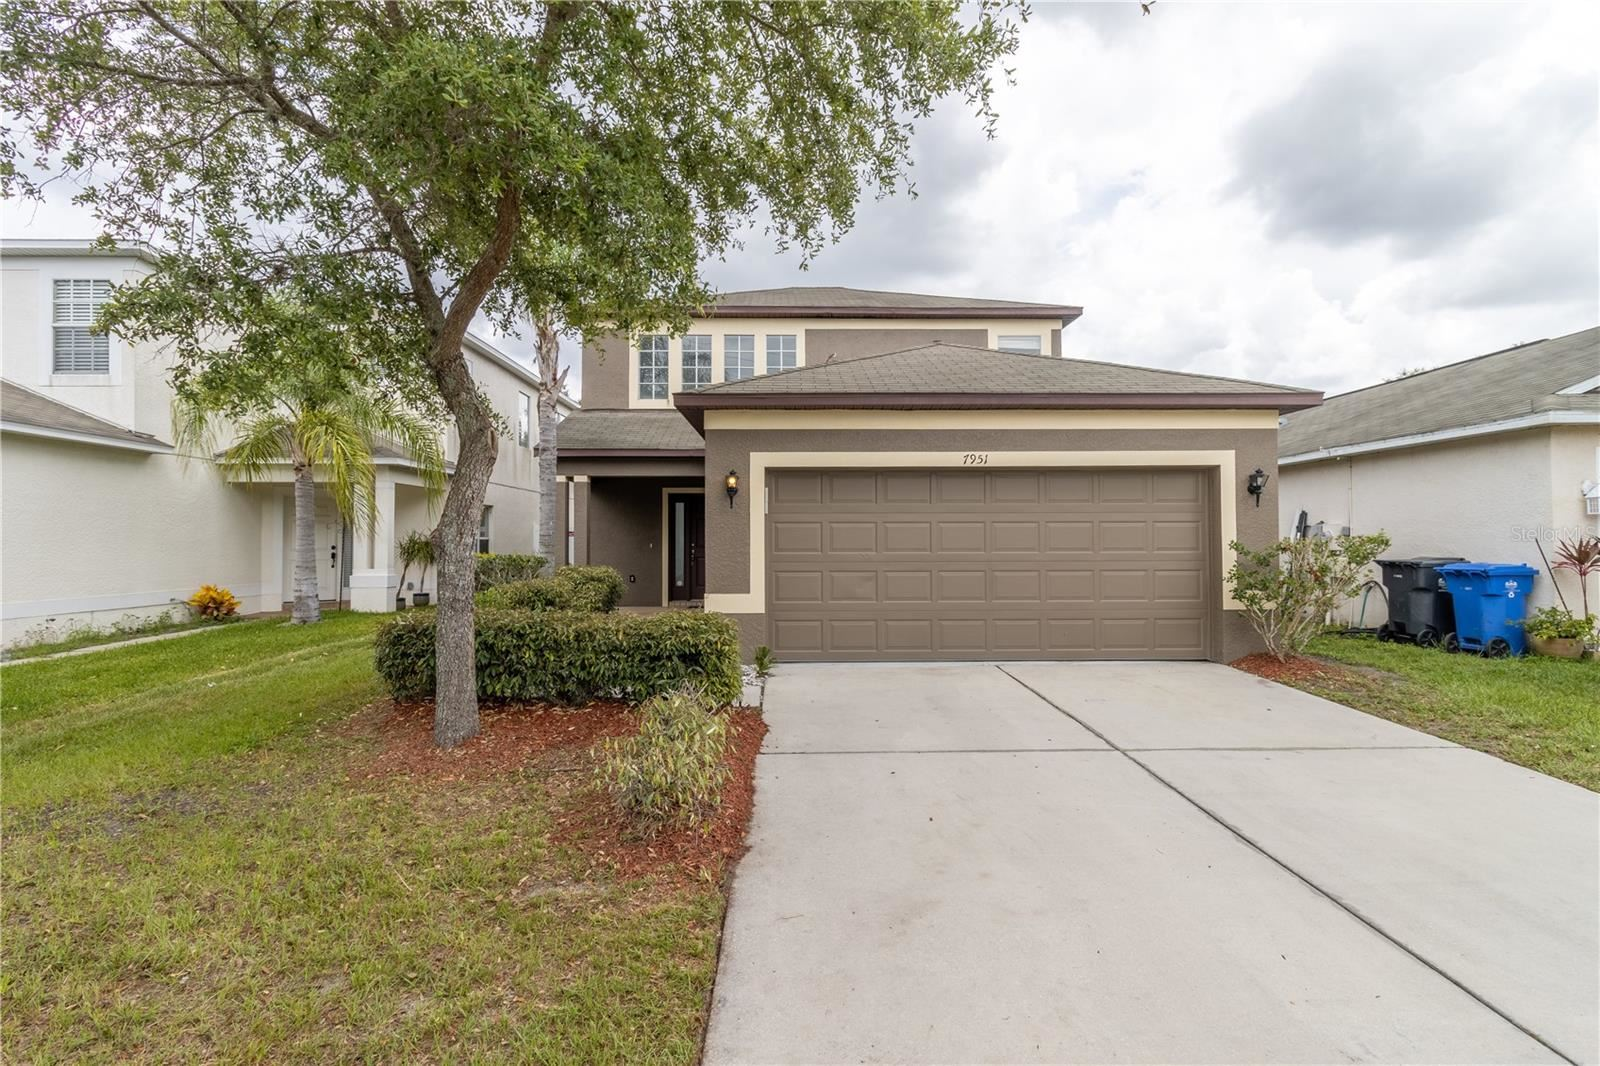 7951 CARRIAGE POINTE DRIVE, Gibsonton, FL 33534 - #: T3309953